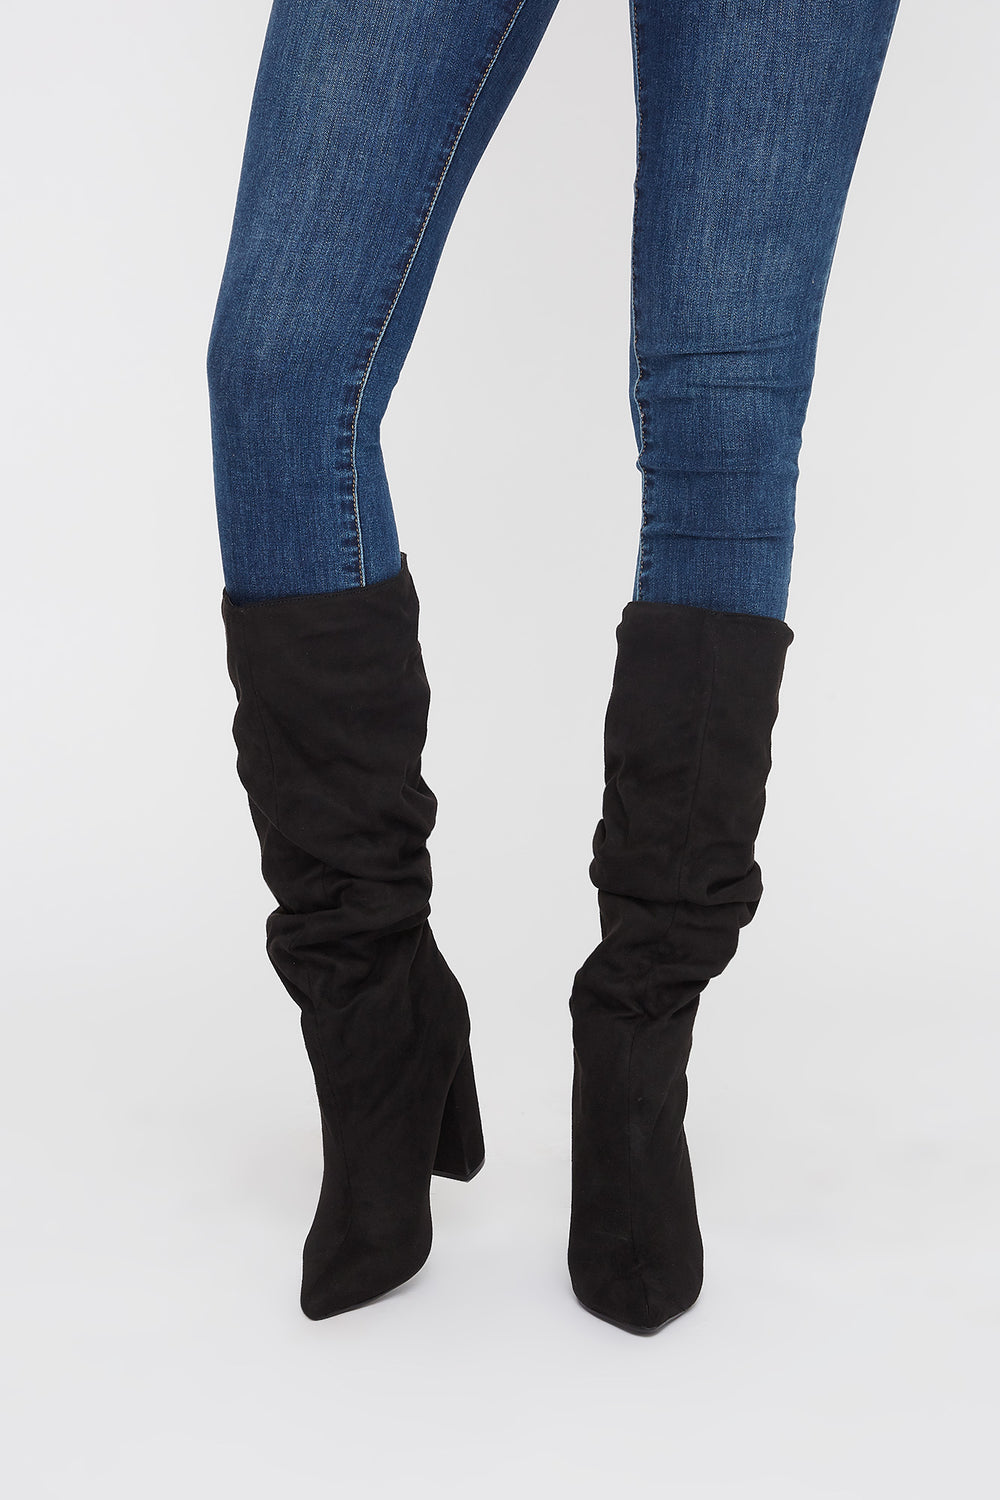 Pointed Ruched Heel Knee High Boot Black